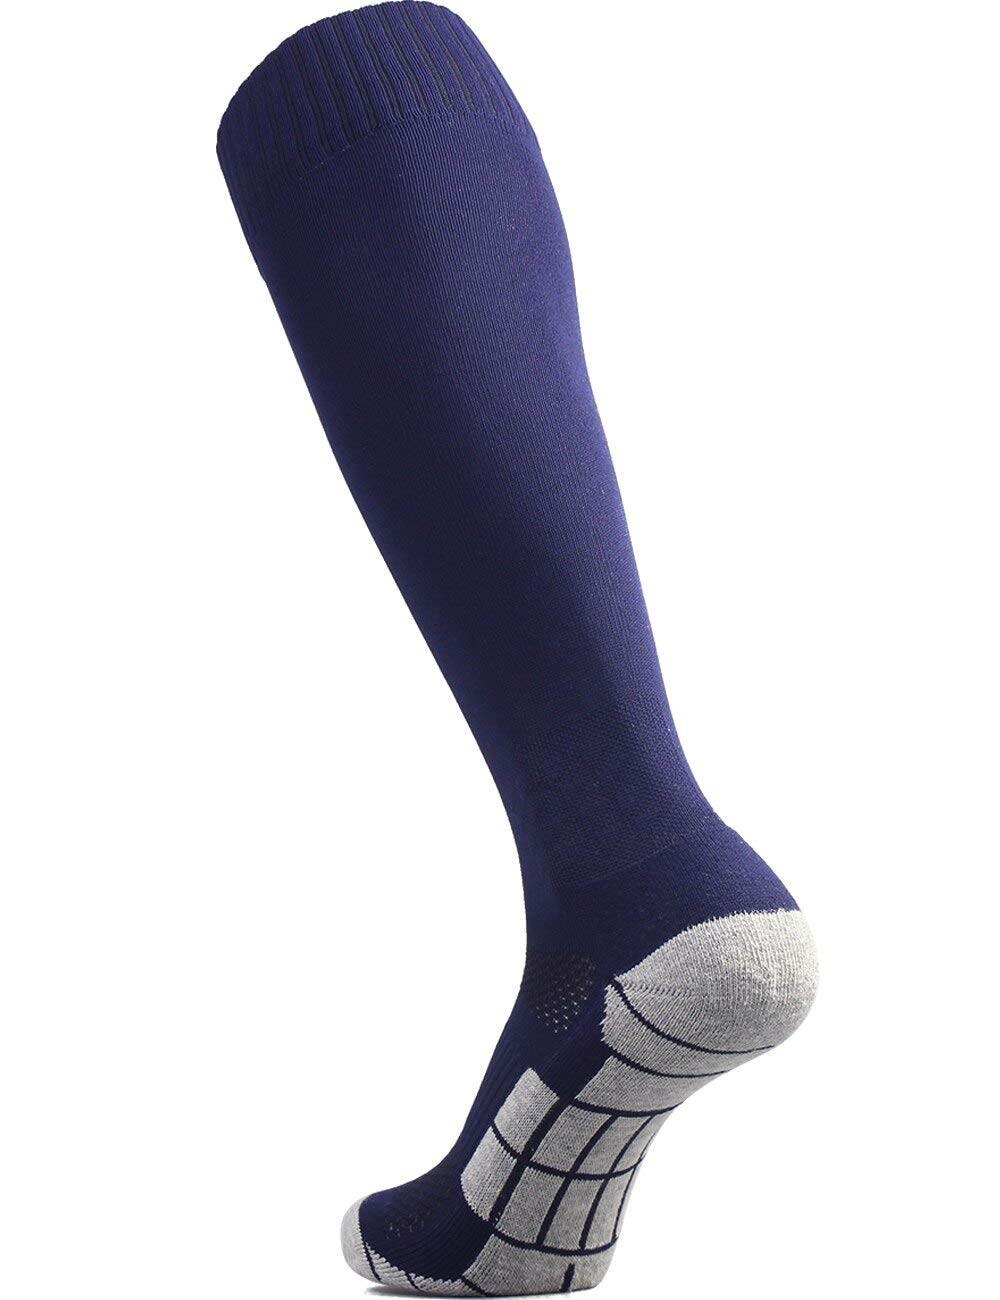 CWVLC Soccer Socks Mens Womens Rugby Sport Softball Team Athletic Knee High Long Tube Cotton Compression Socks Navy Blue Large (10-13 Women/8-12 Men) by CWVLC